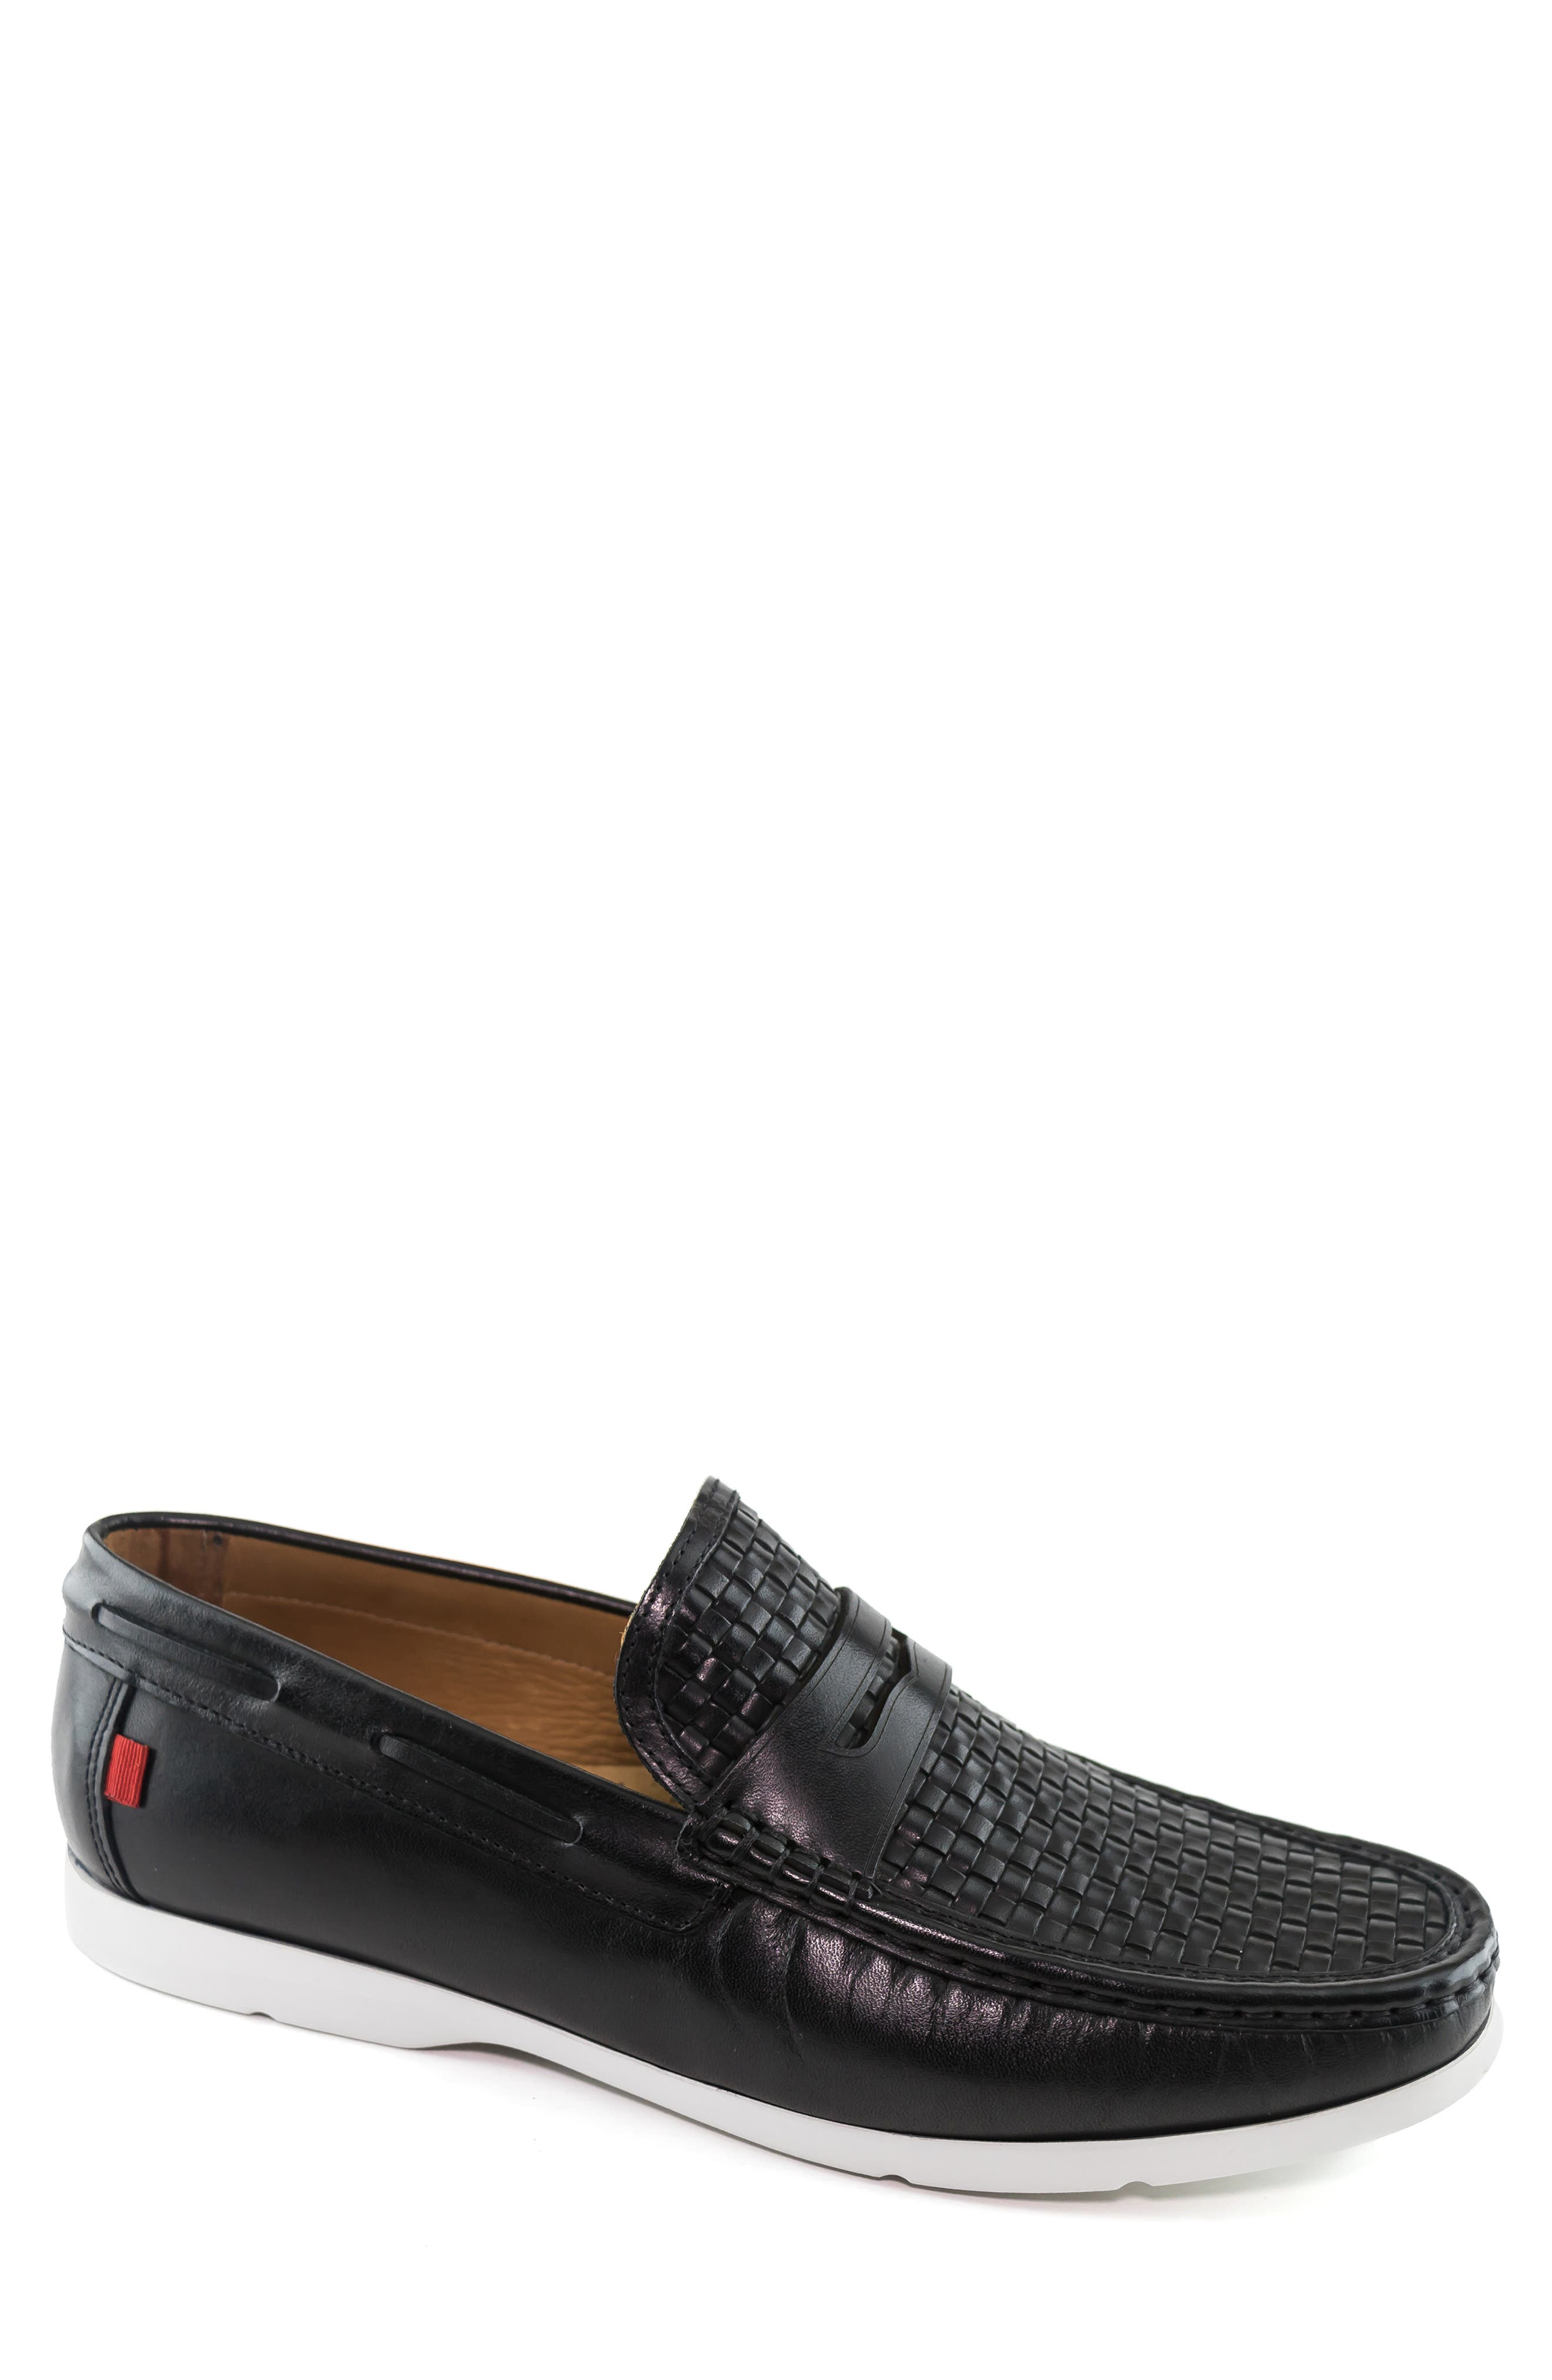 A woven texture adds intrigue to a versatile, handcrafted loafer built from supple nappa calfskin with a flexible traction sole. Style Name: Marc Joseph New York Thompson Street Penny Loafer (Men). Style Number: 5850497. Available in stores.